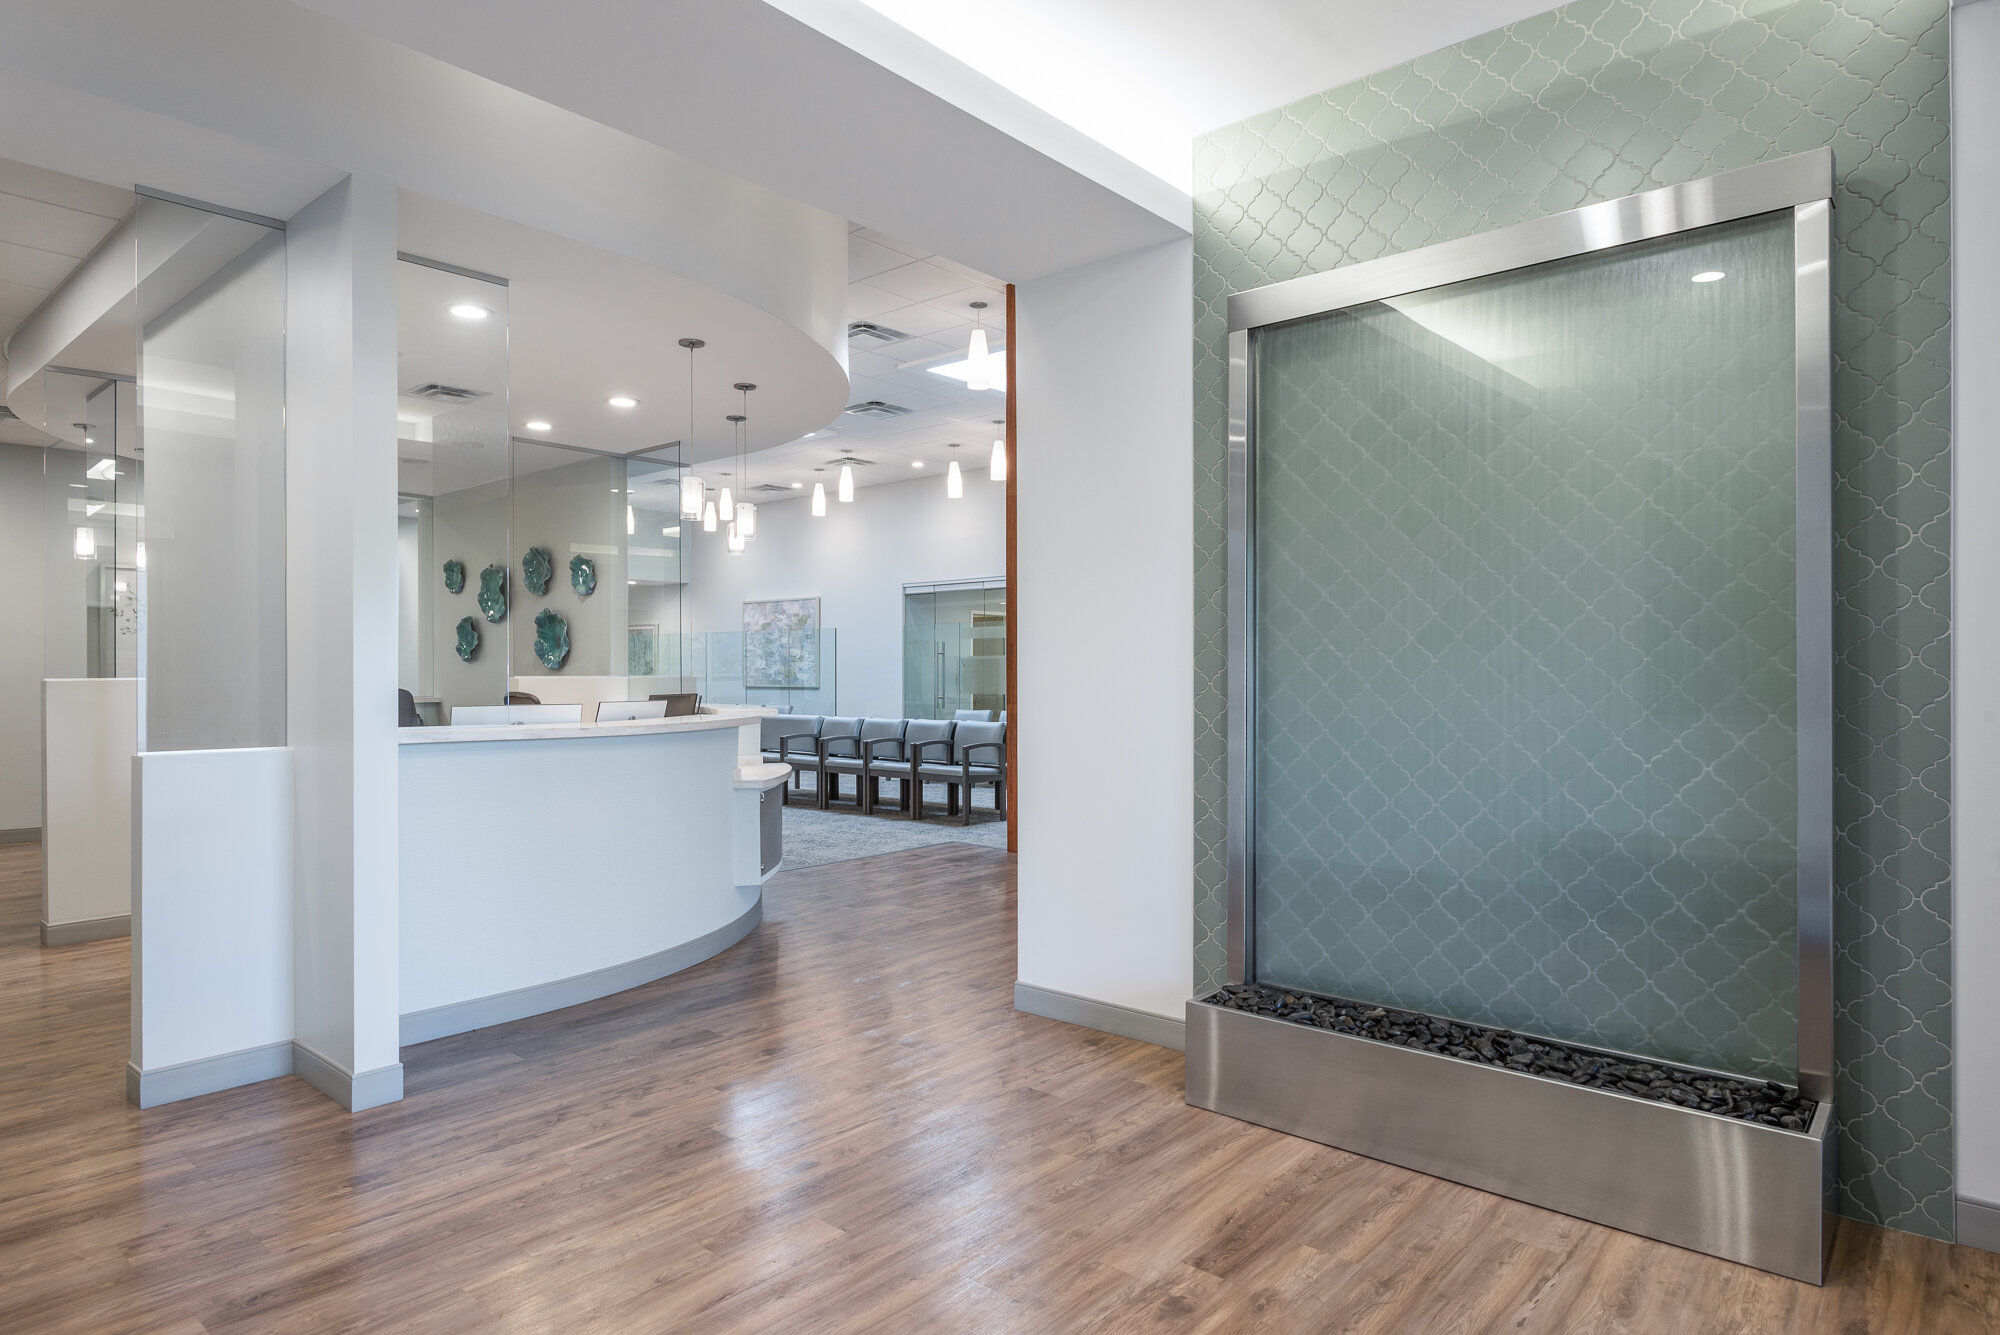 Micamy Design Studio_Interior Design_Faben Obstetrics and Gynelcology_North Florida_Riverplace_San Marco_Healthcare_Office_Medical_Trwobridge_Reception_Patcraft_Waterfall_Entry.jpg